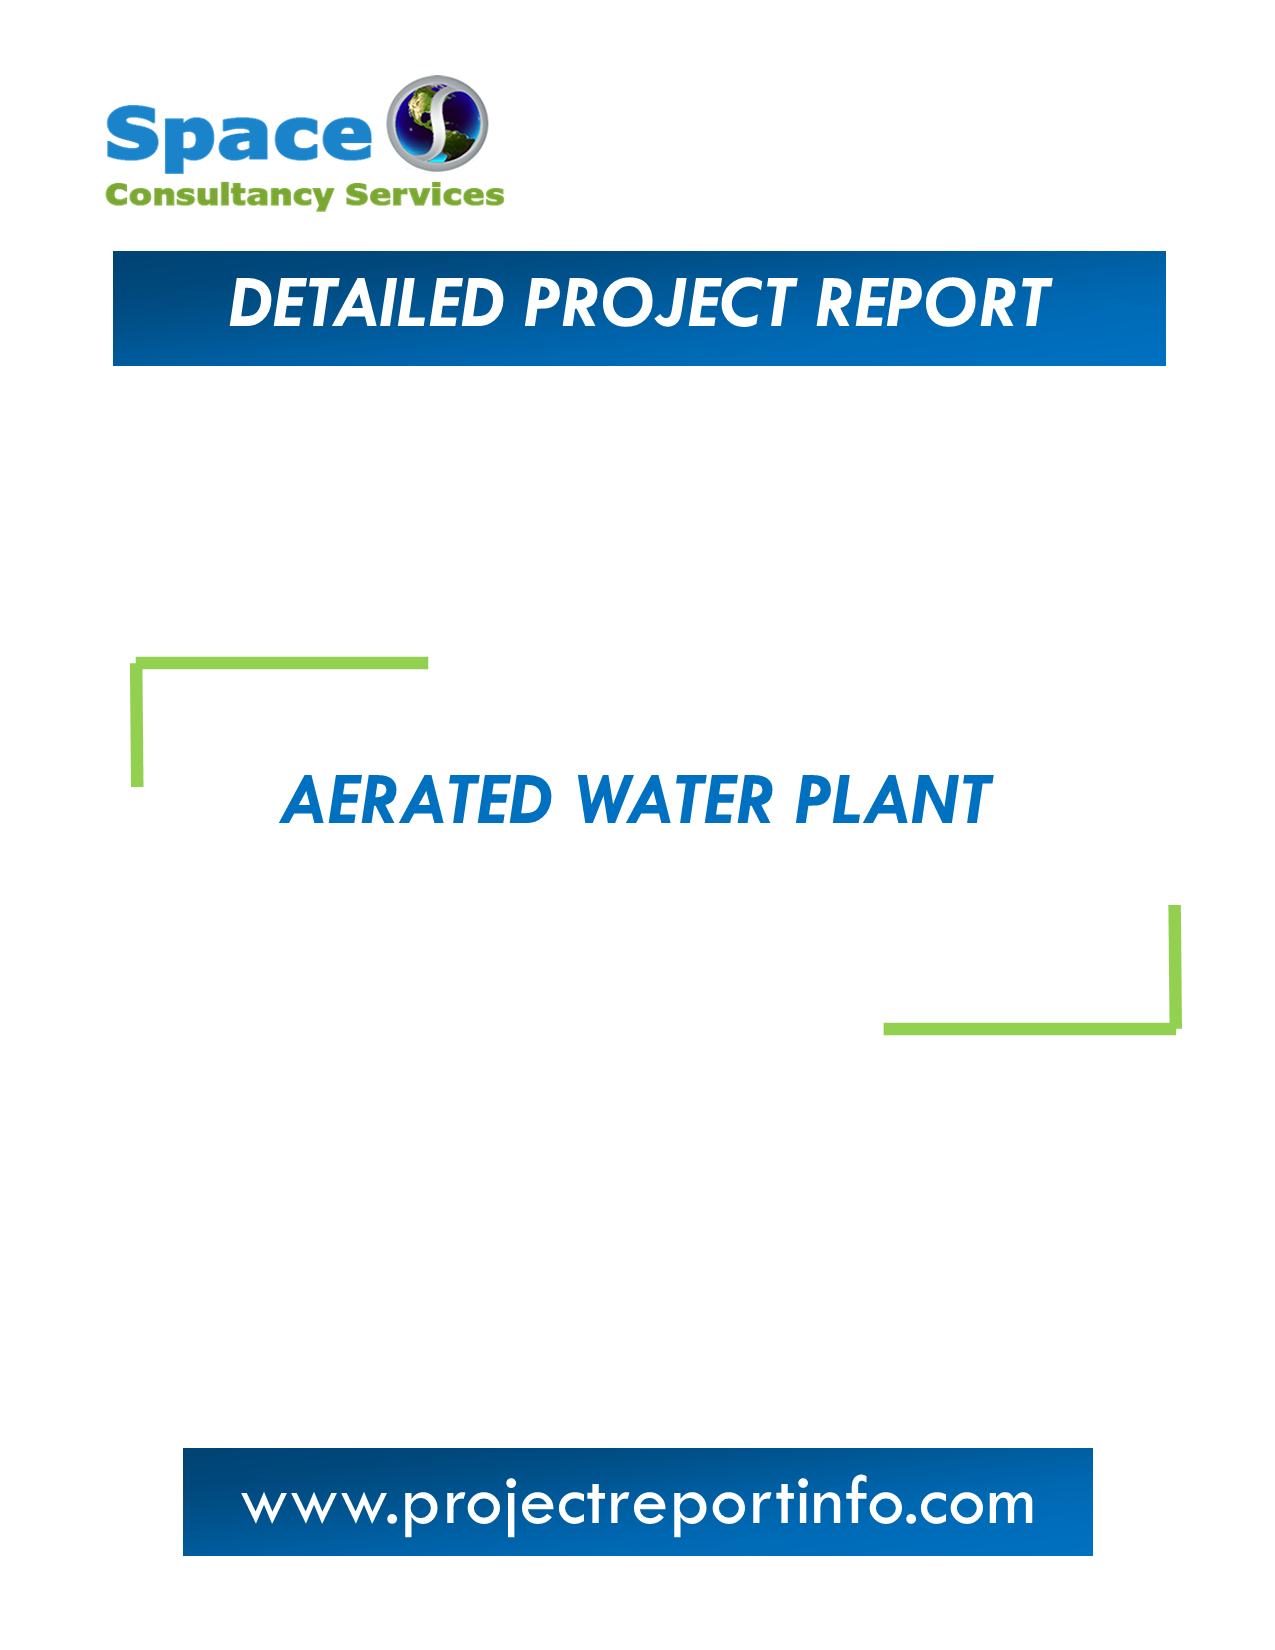 Project Report on Aerated Water Plant